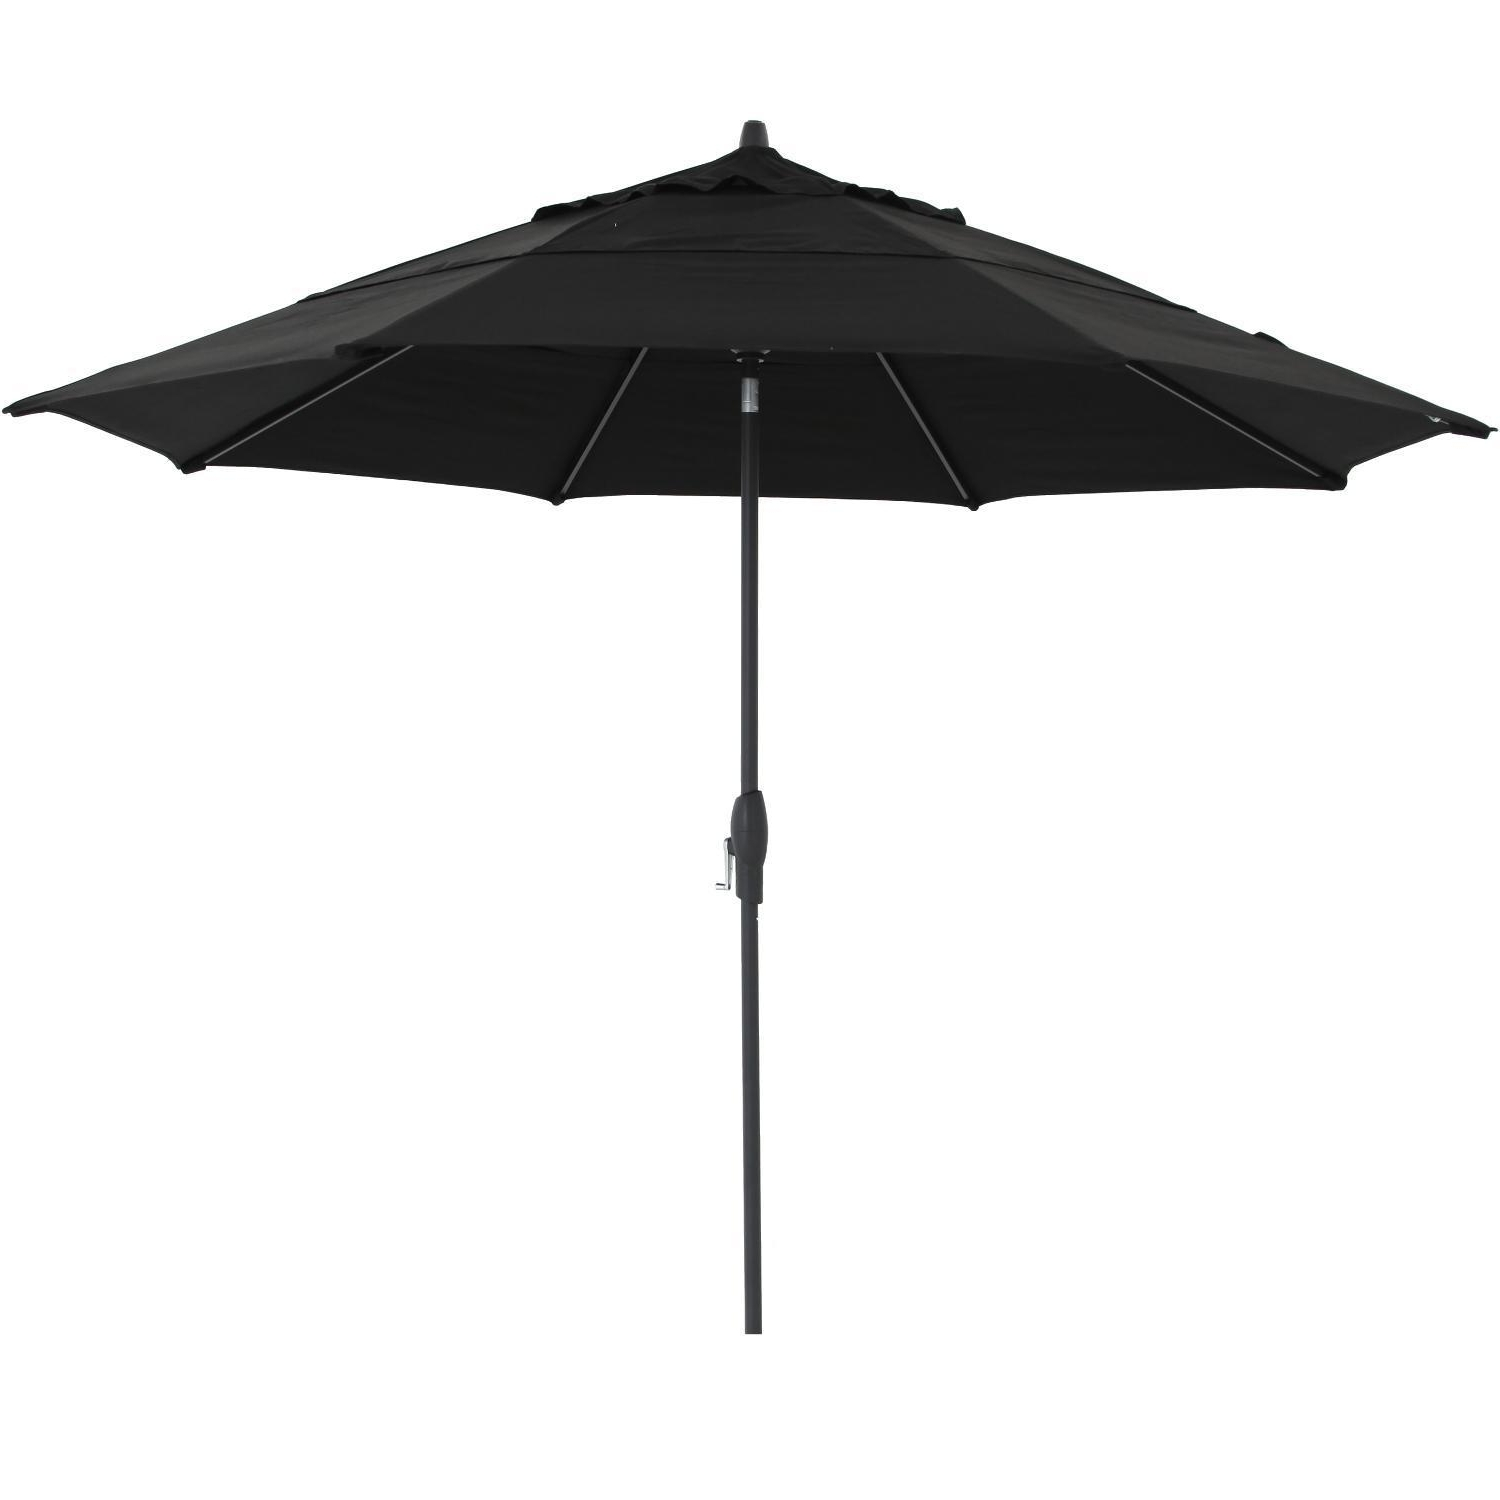 2019 11 Foot Patio Umbrellas Intended For Treasure Garden 11 Ft (View 4 of 20)